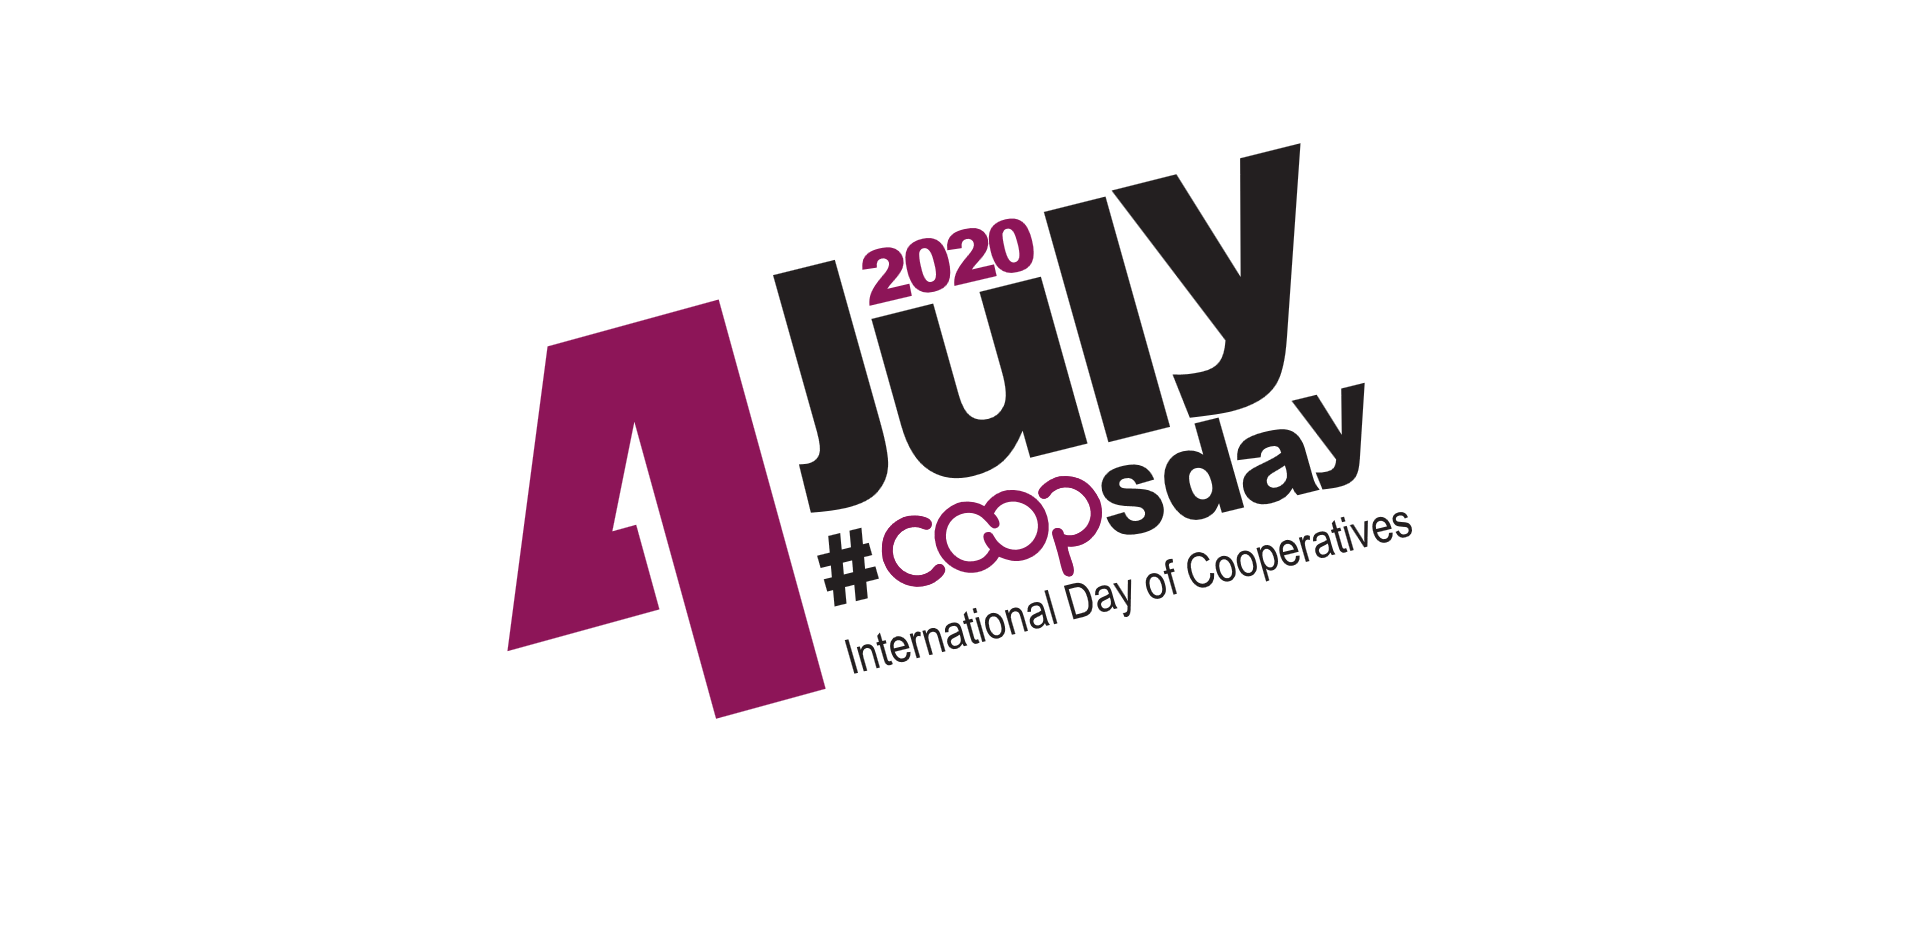 #CoopsDay International Day of Cooperatives